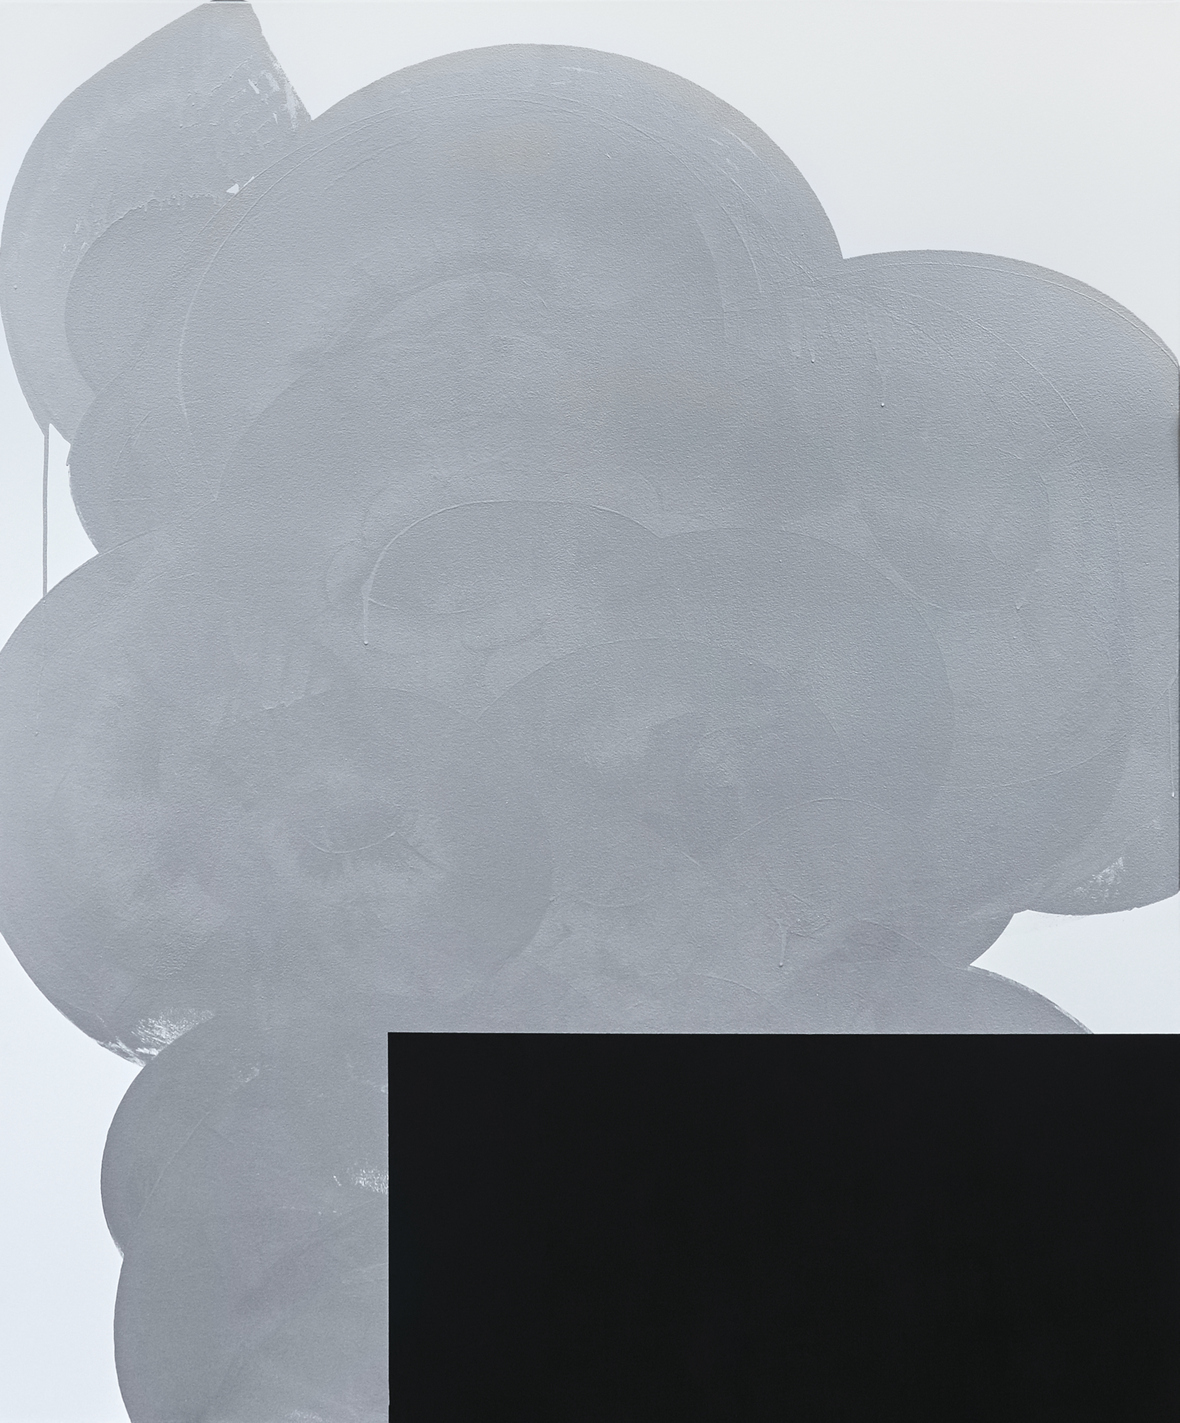 Chad Hasegawa Silver With Black 1 latex and acrylic on canvas - 72 x 60 inches